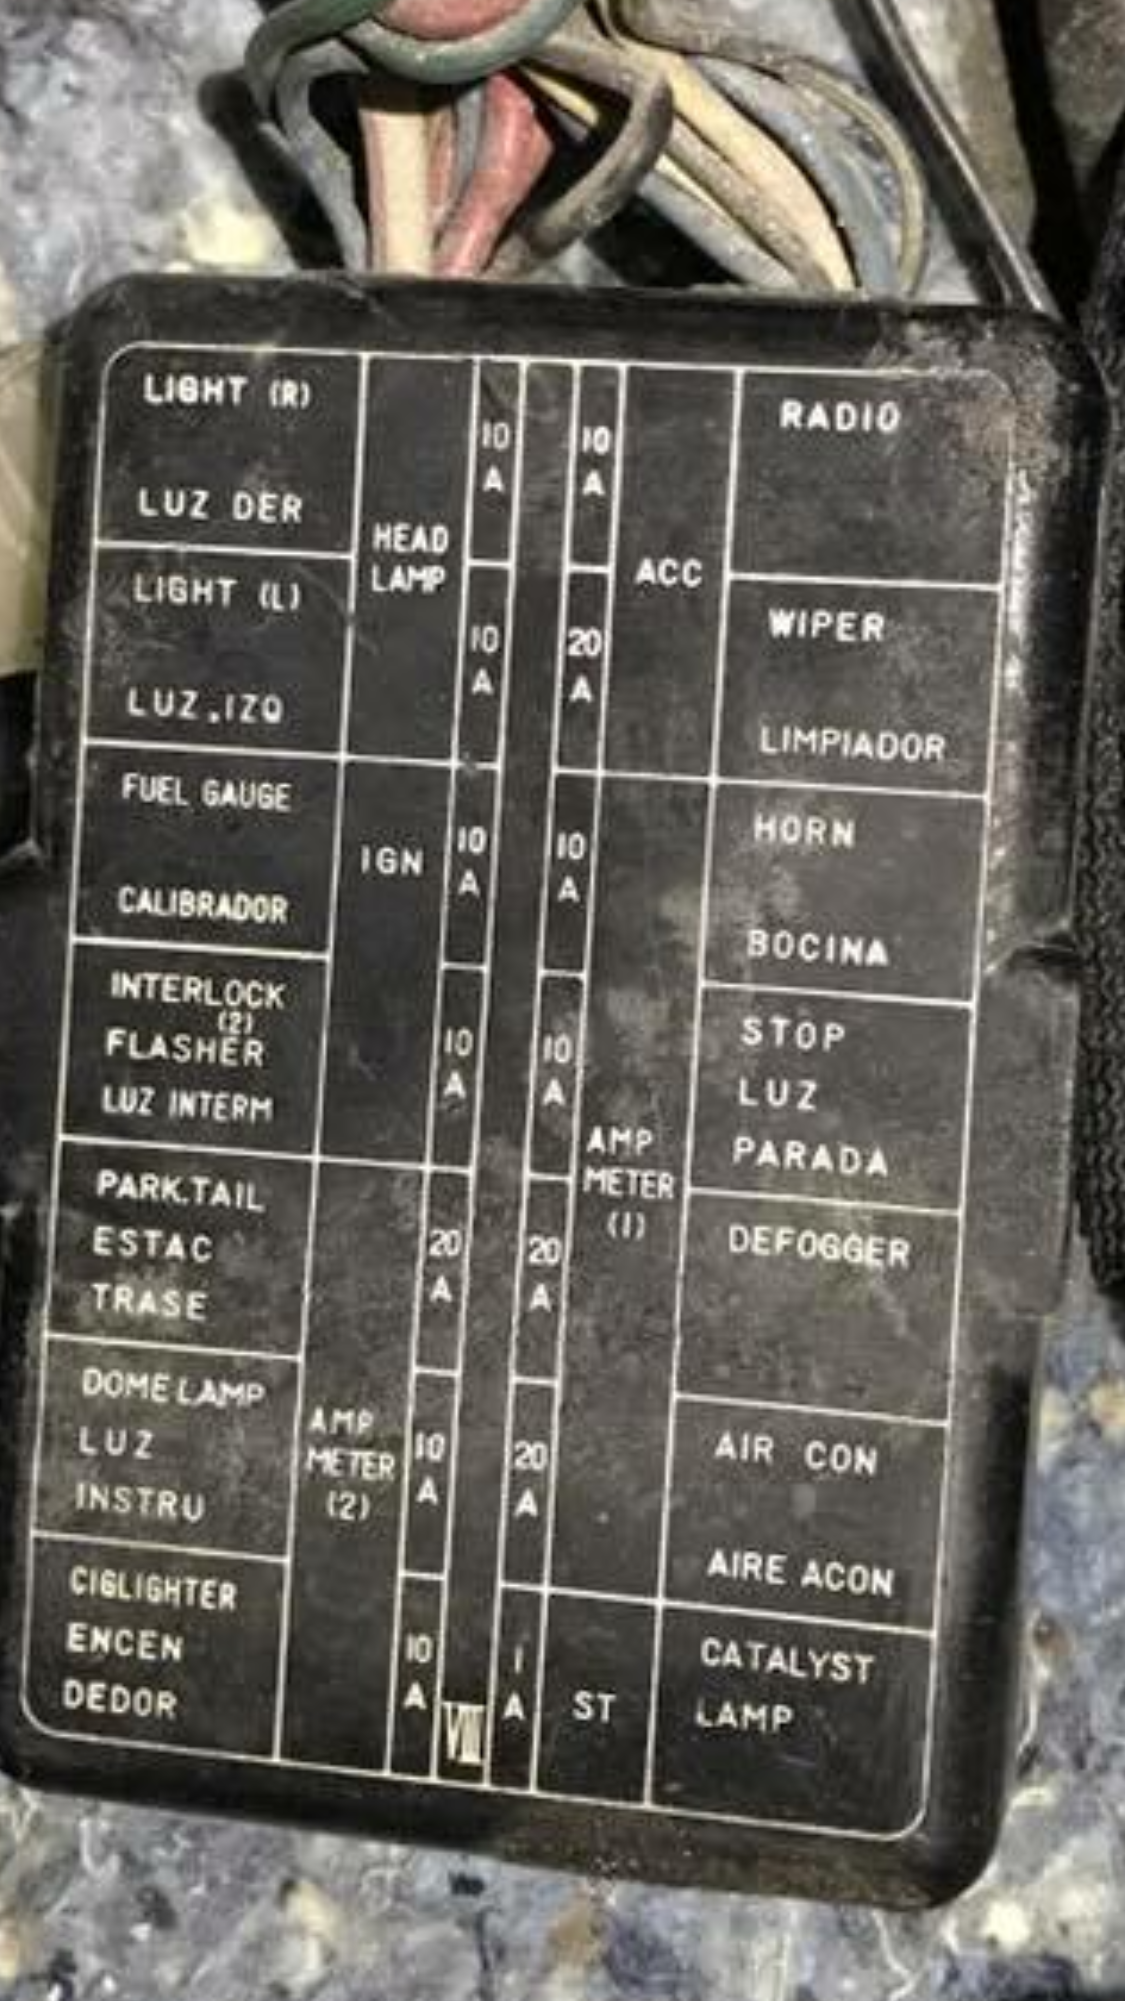 260z fuse box wiring diagram for you 260z fuse box diagram 260z fuse box [ 1125 x 2001 Pixel ]